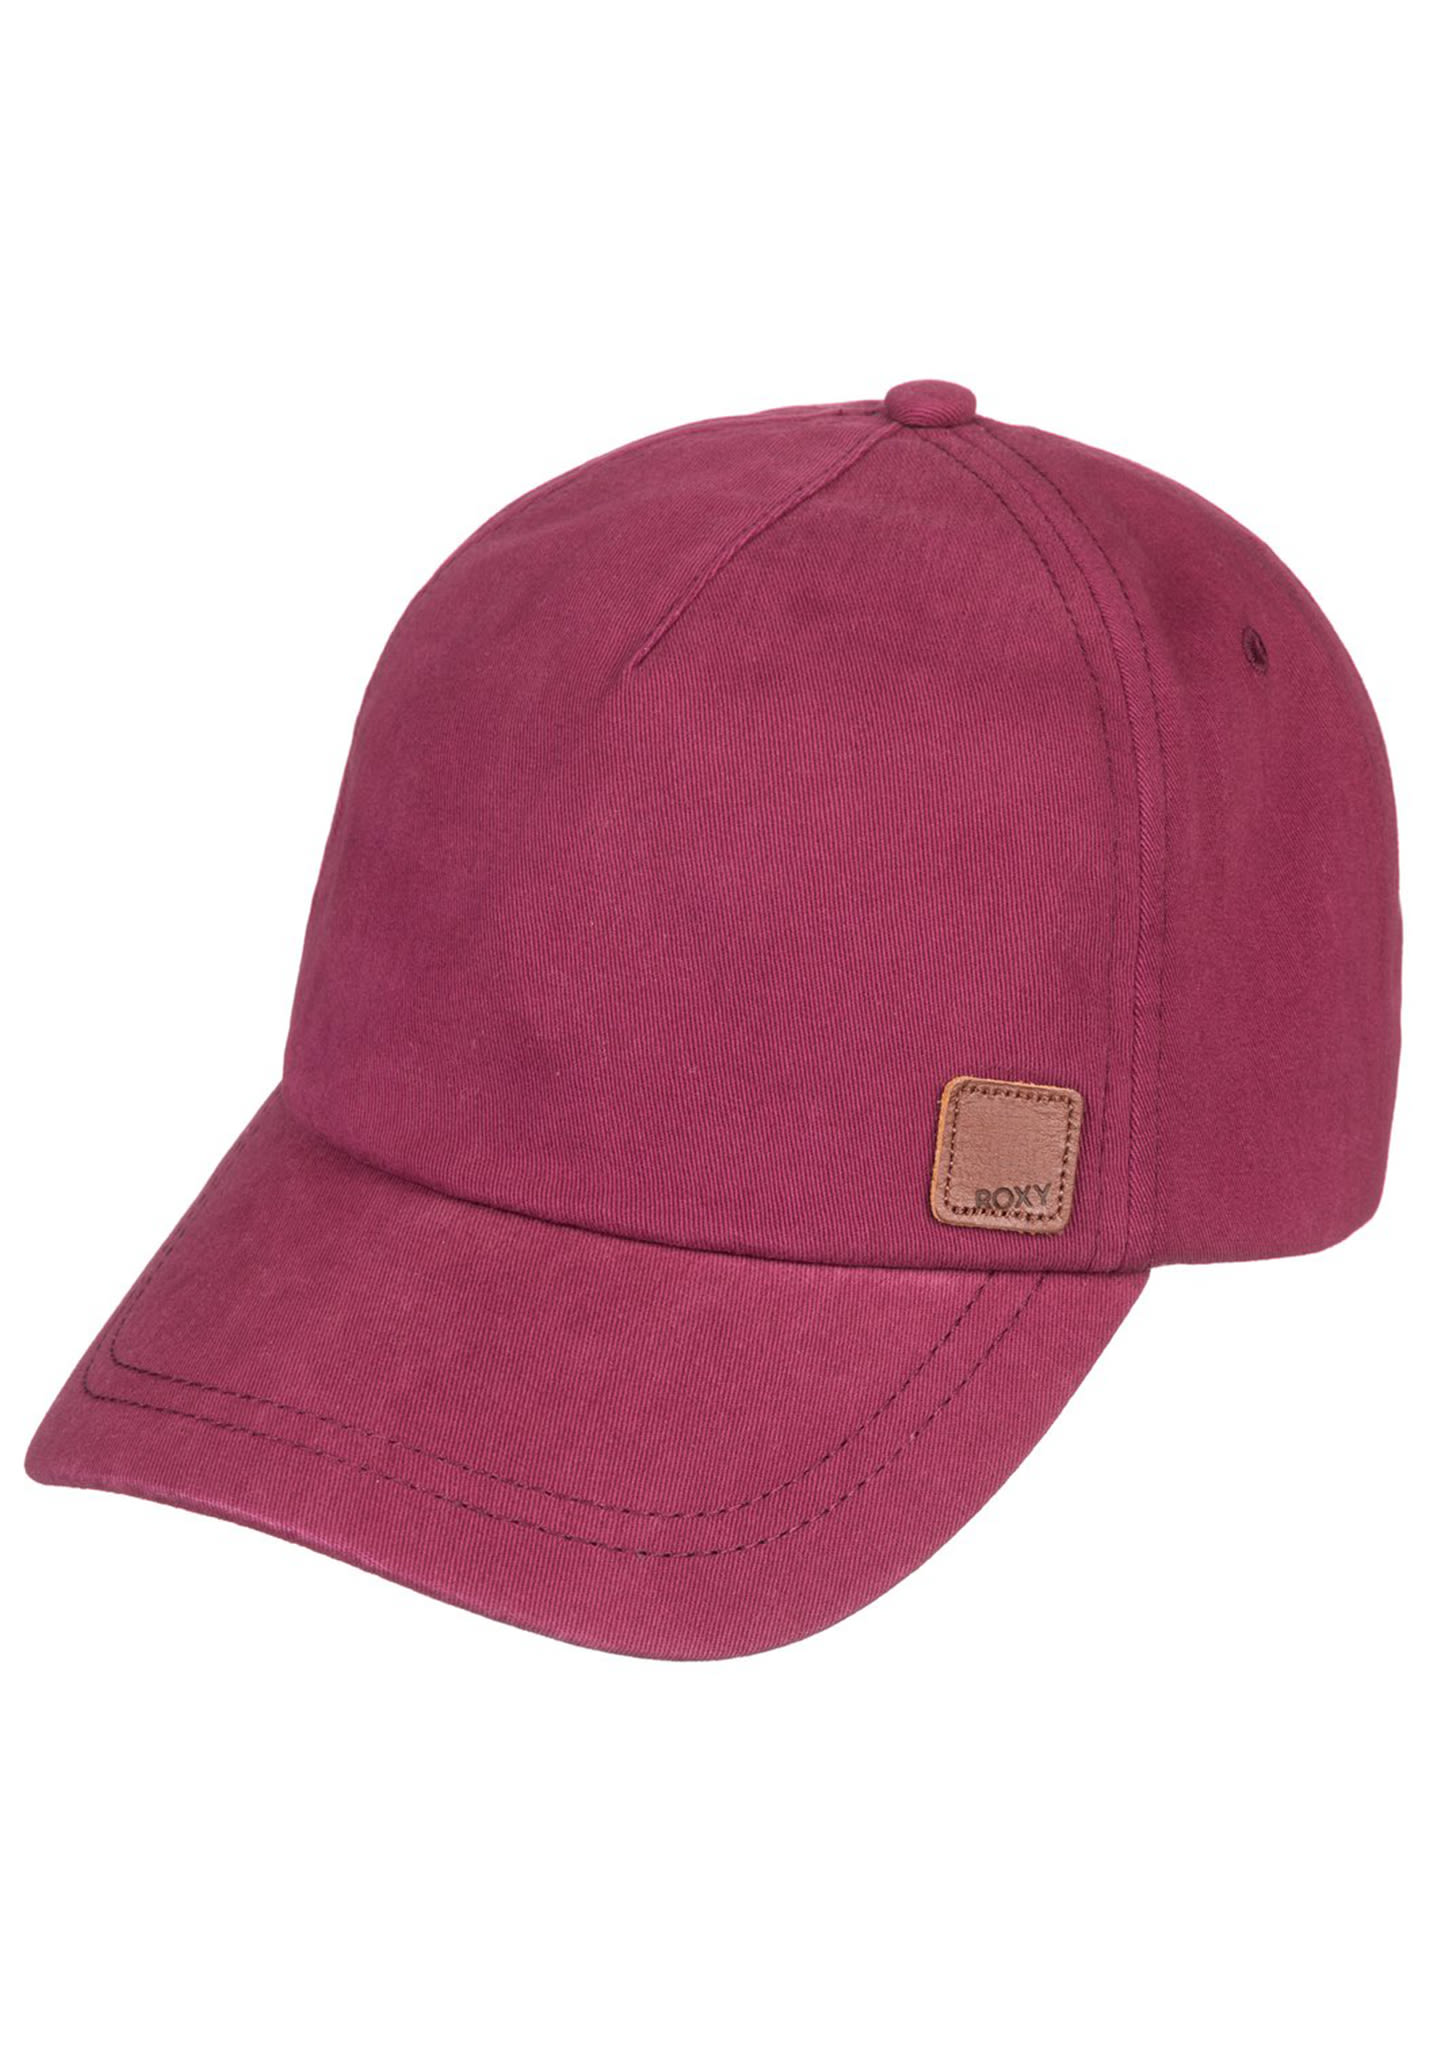 1f255028440 Roxy Extra Innings A - Cap for Women - Red - Planet Sports